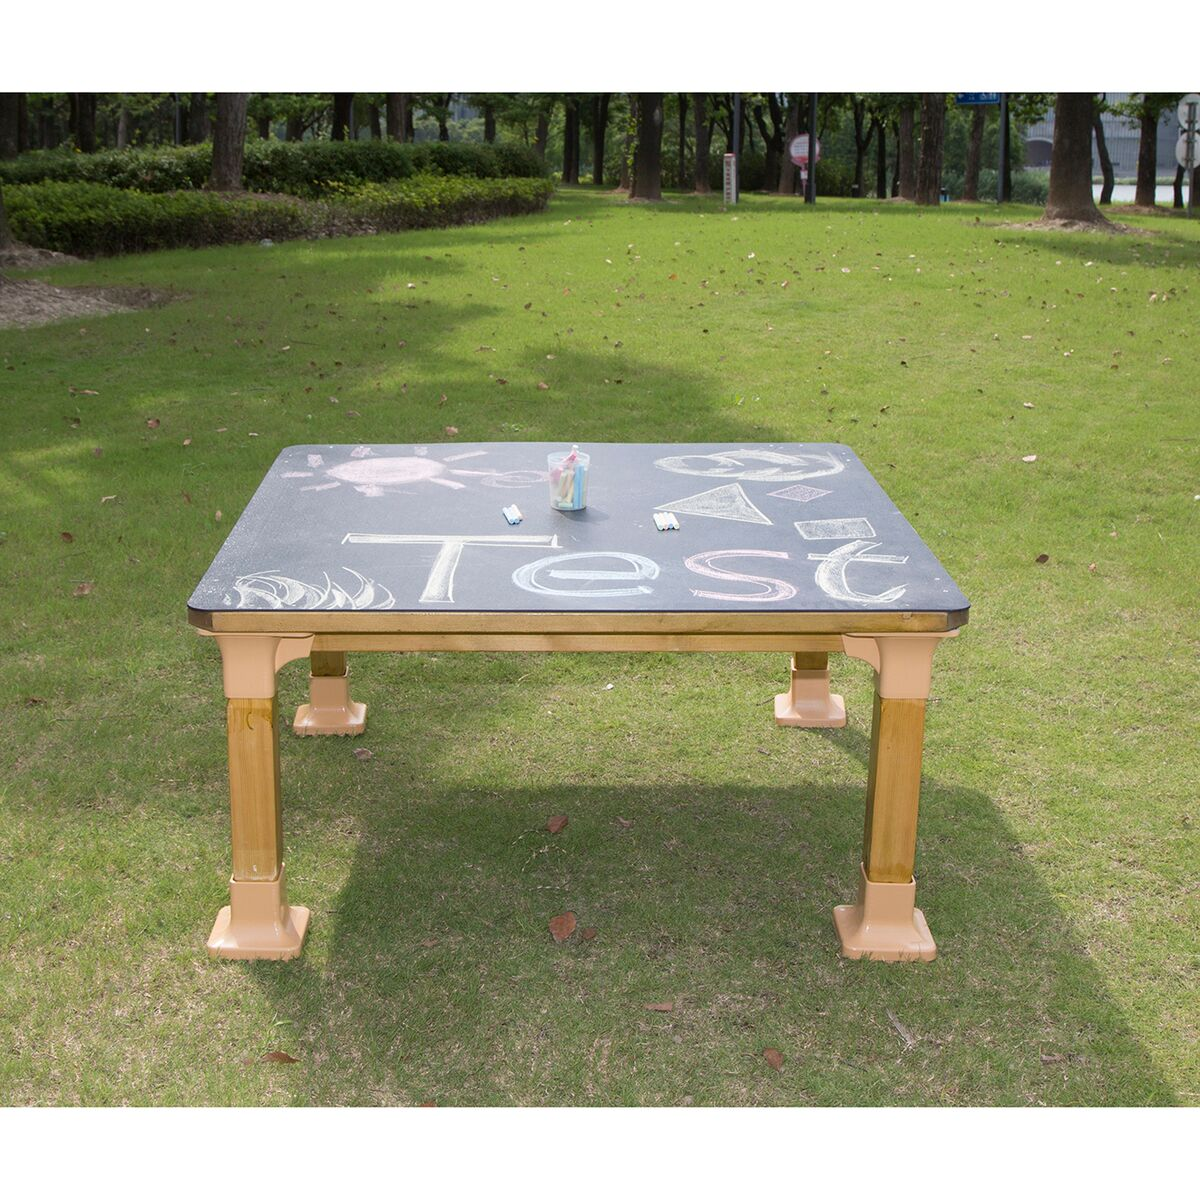 Outdoor Chalkboard Table